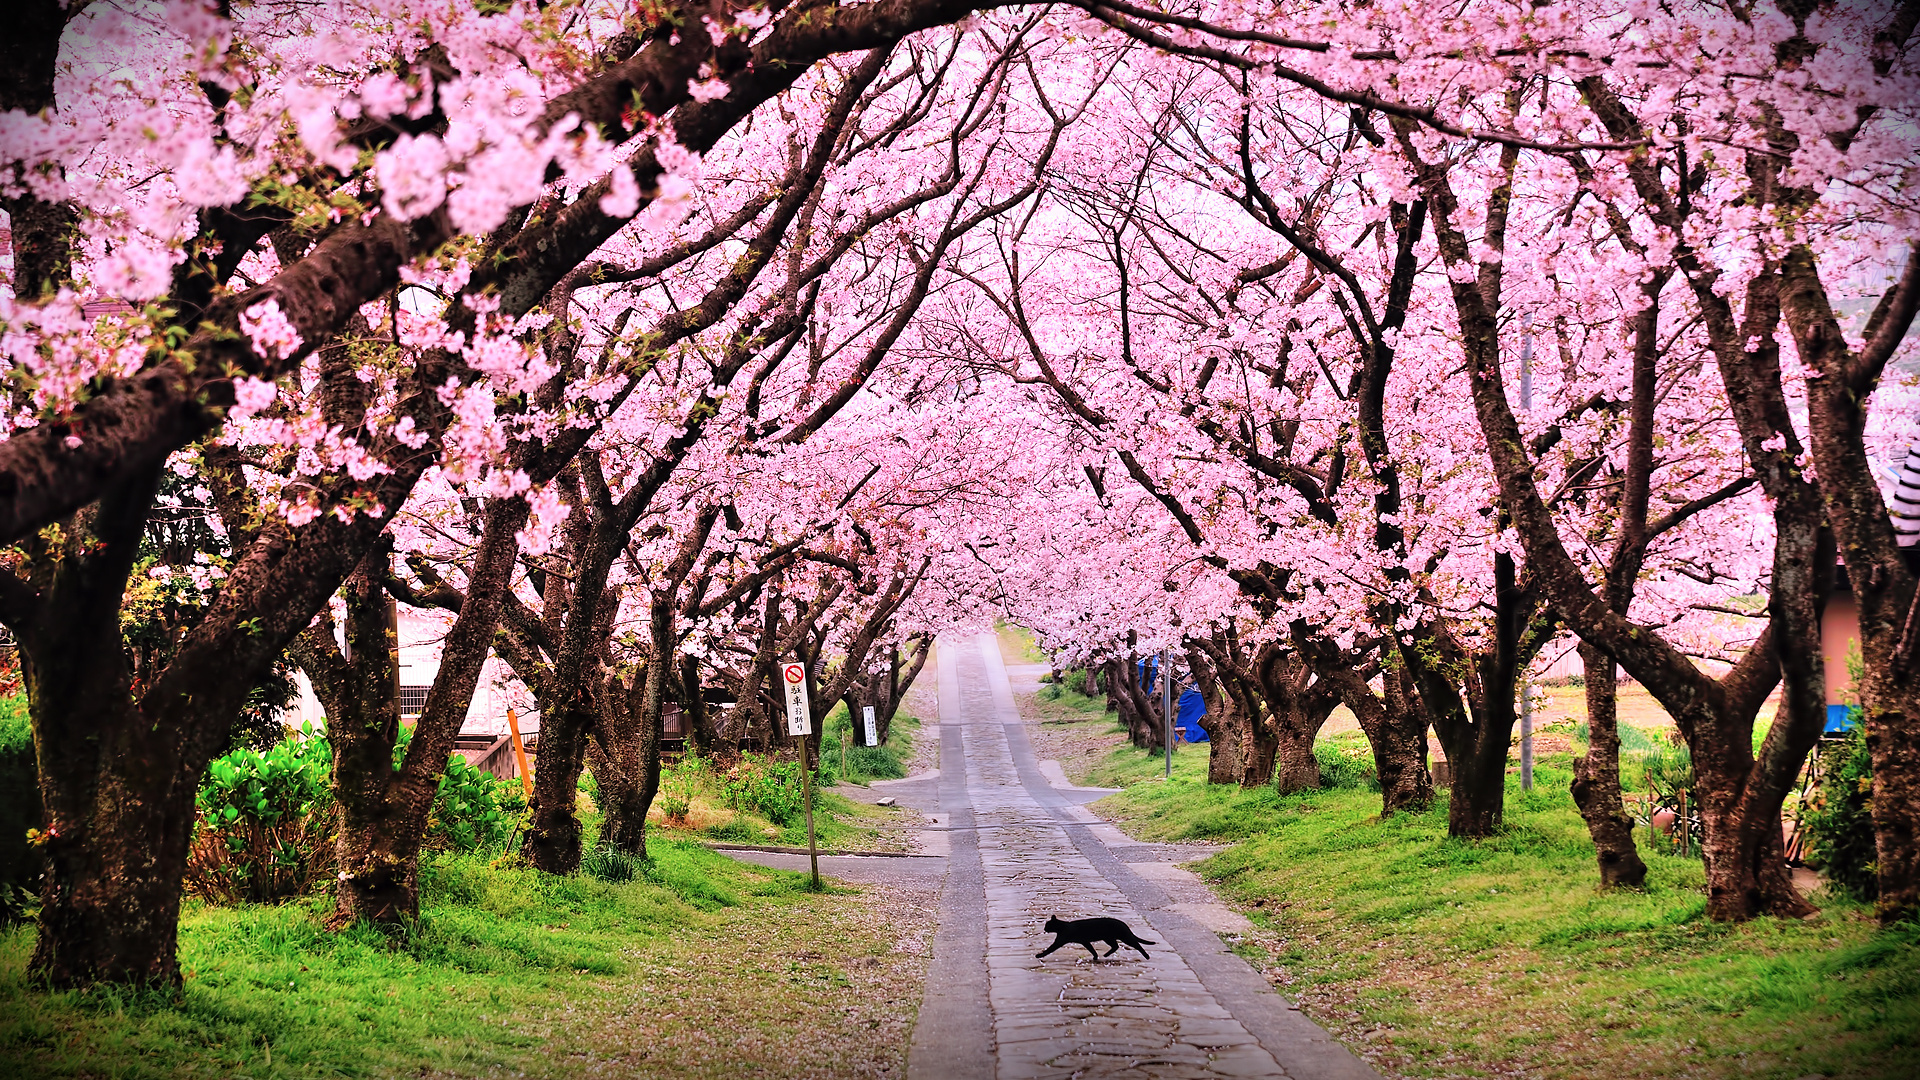 Tree trees blossom blossoms cat cats pink mood wallpaper Cherry blossom pictures